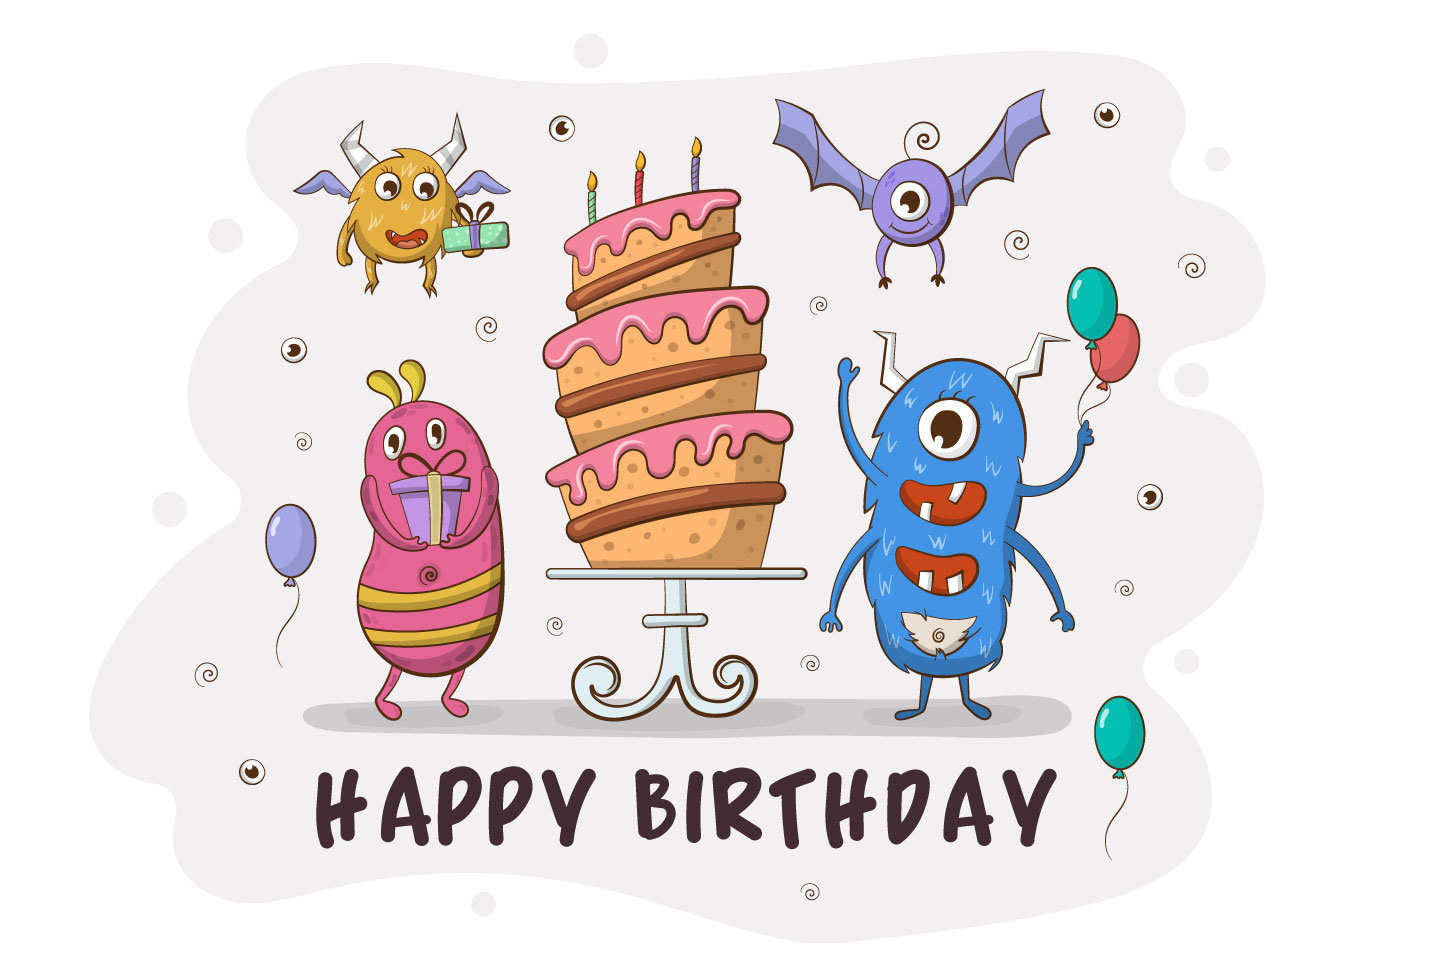 Funny Monsters Birthday Party Free Vector Illustration